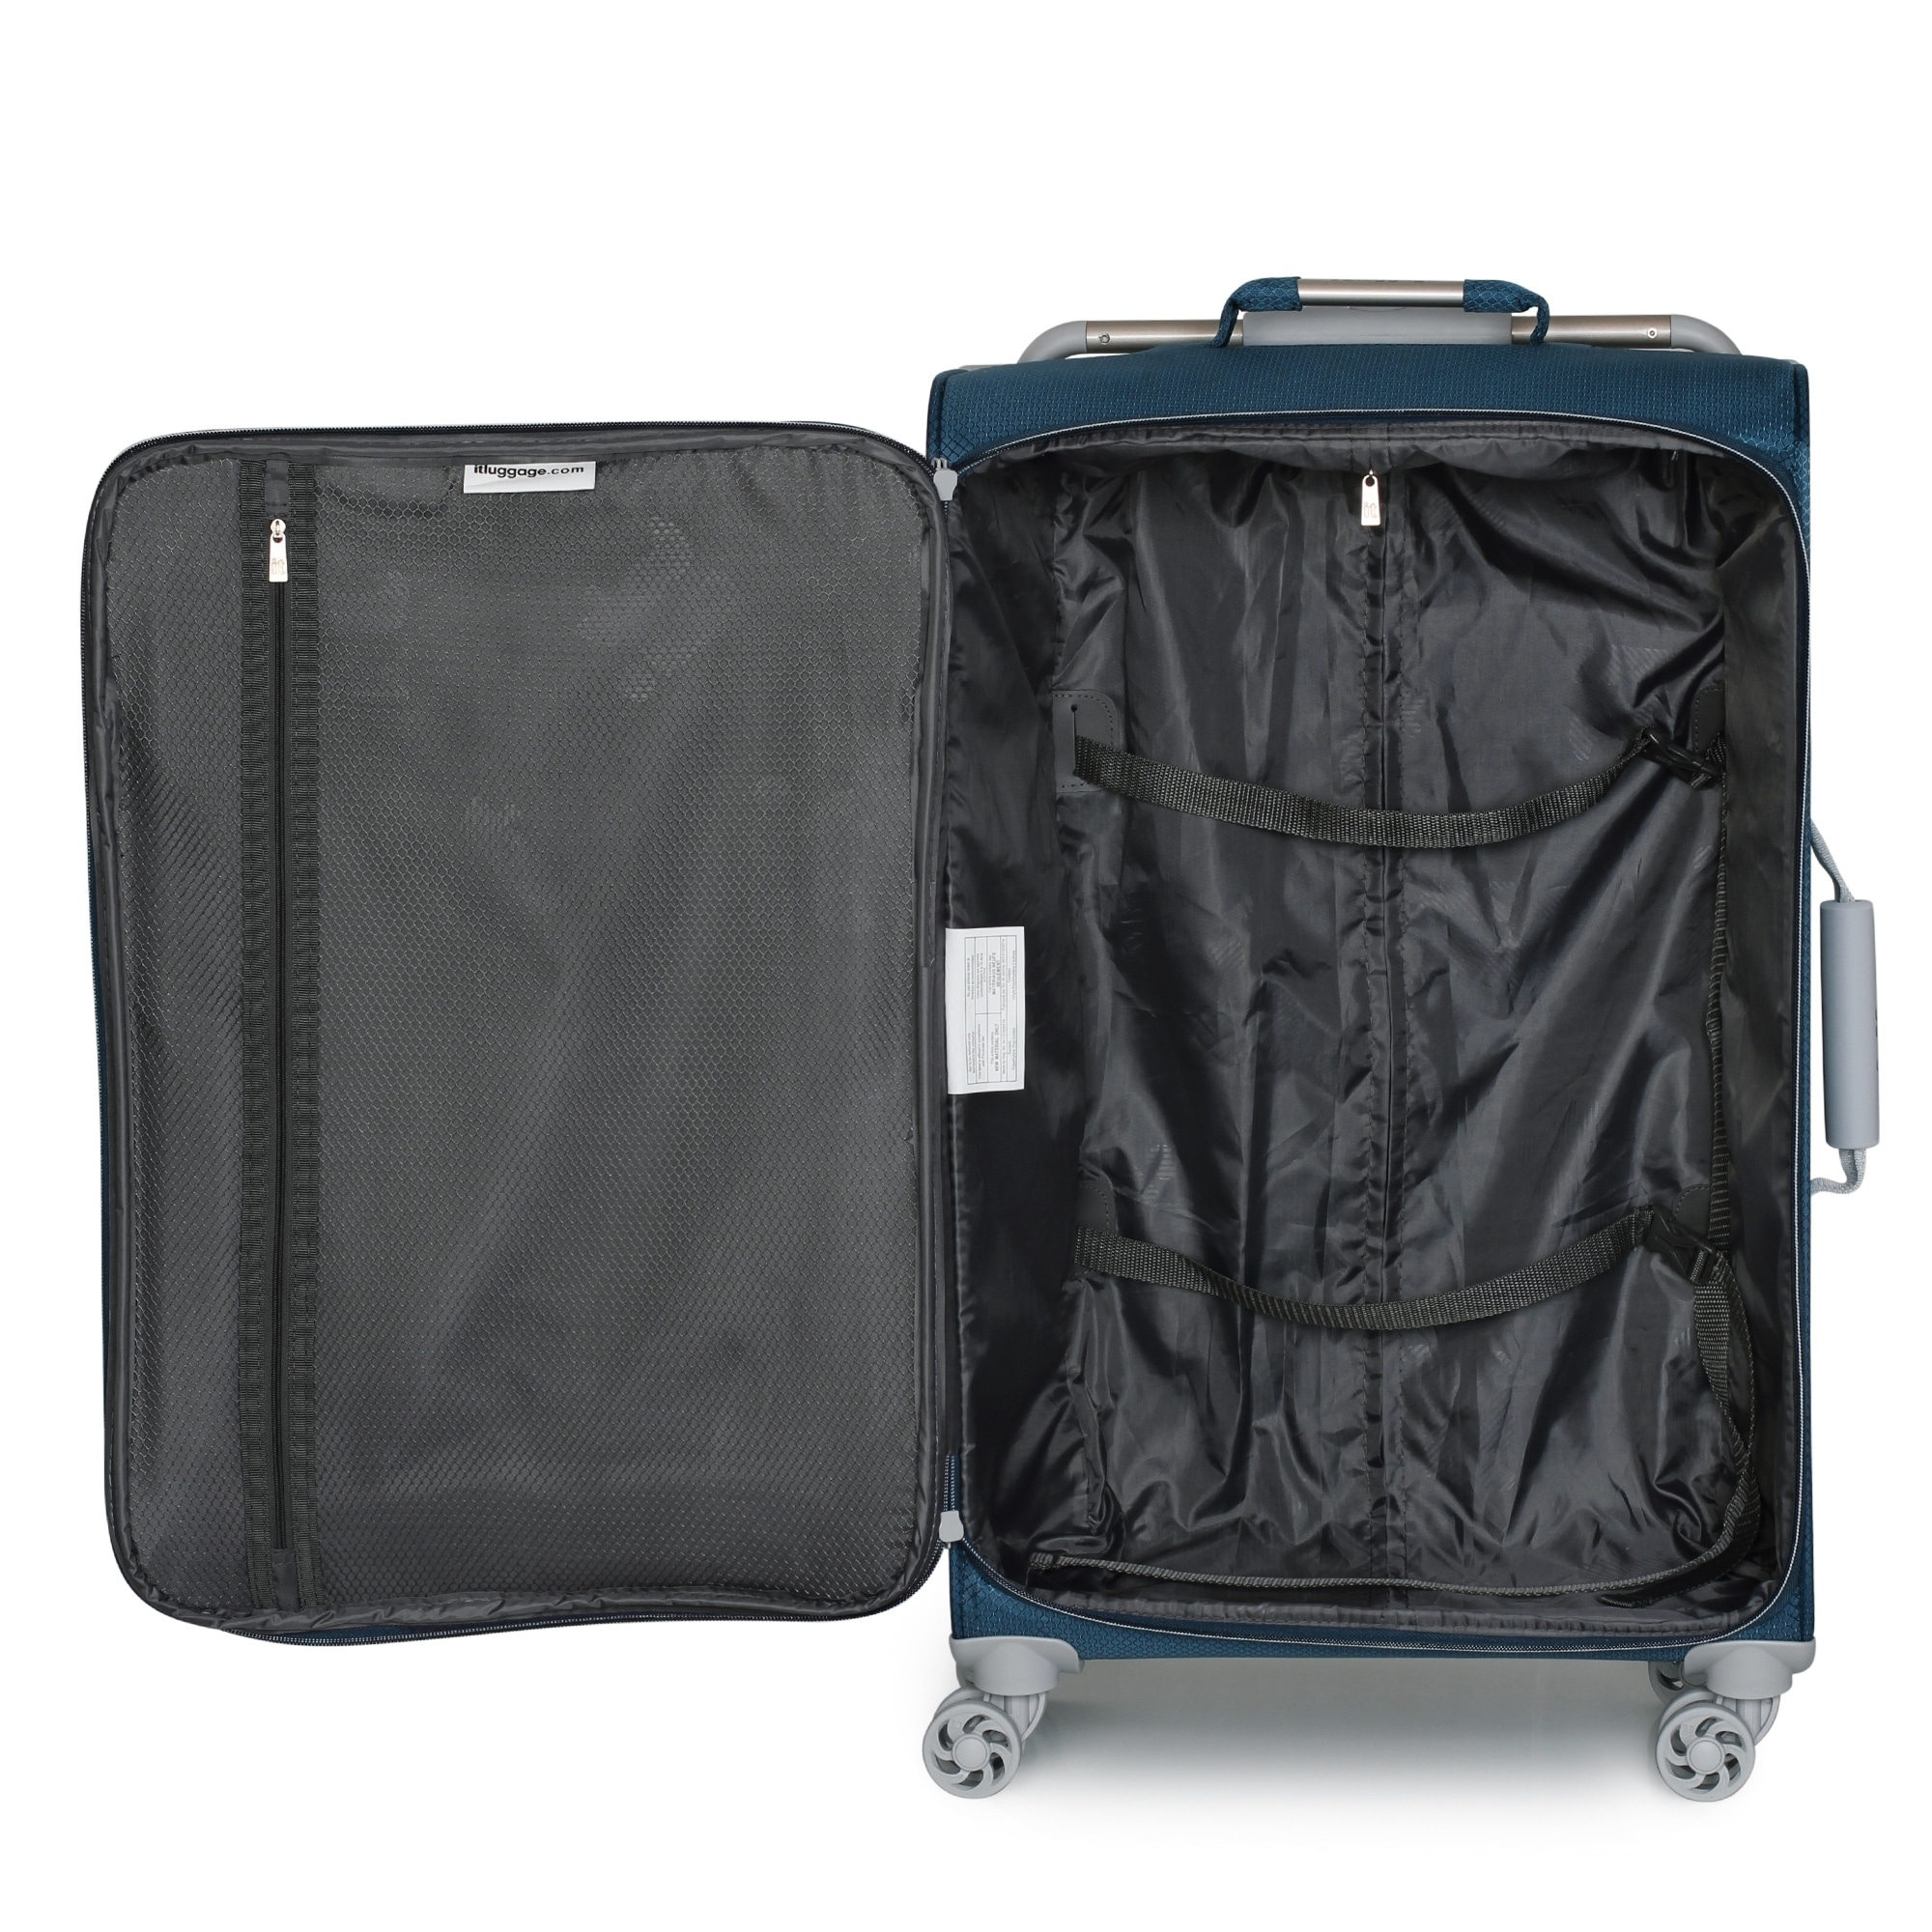 it-luggage-World-039-s-Lightest-27-6-034-Lightweight-Spinner-Suitcase thumbnail 7